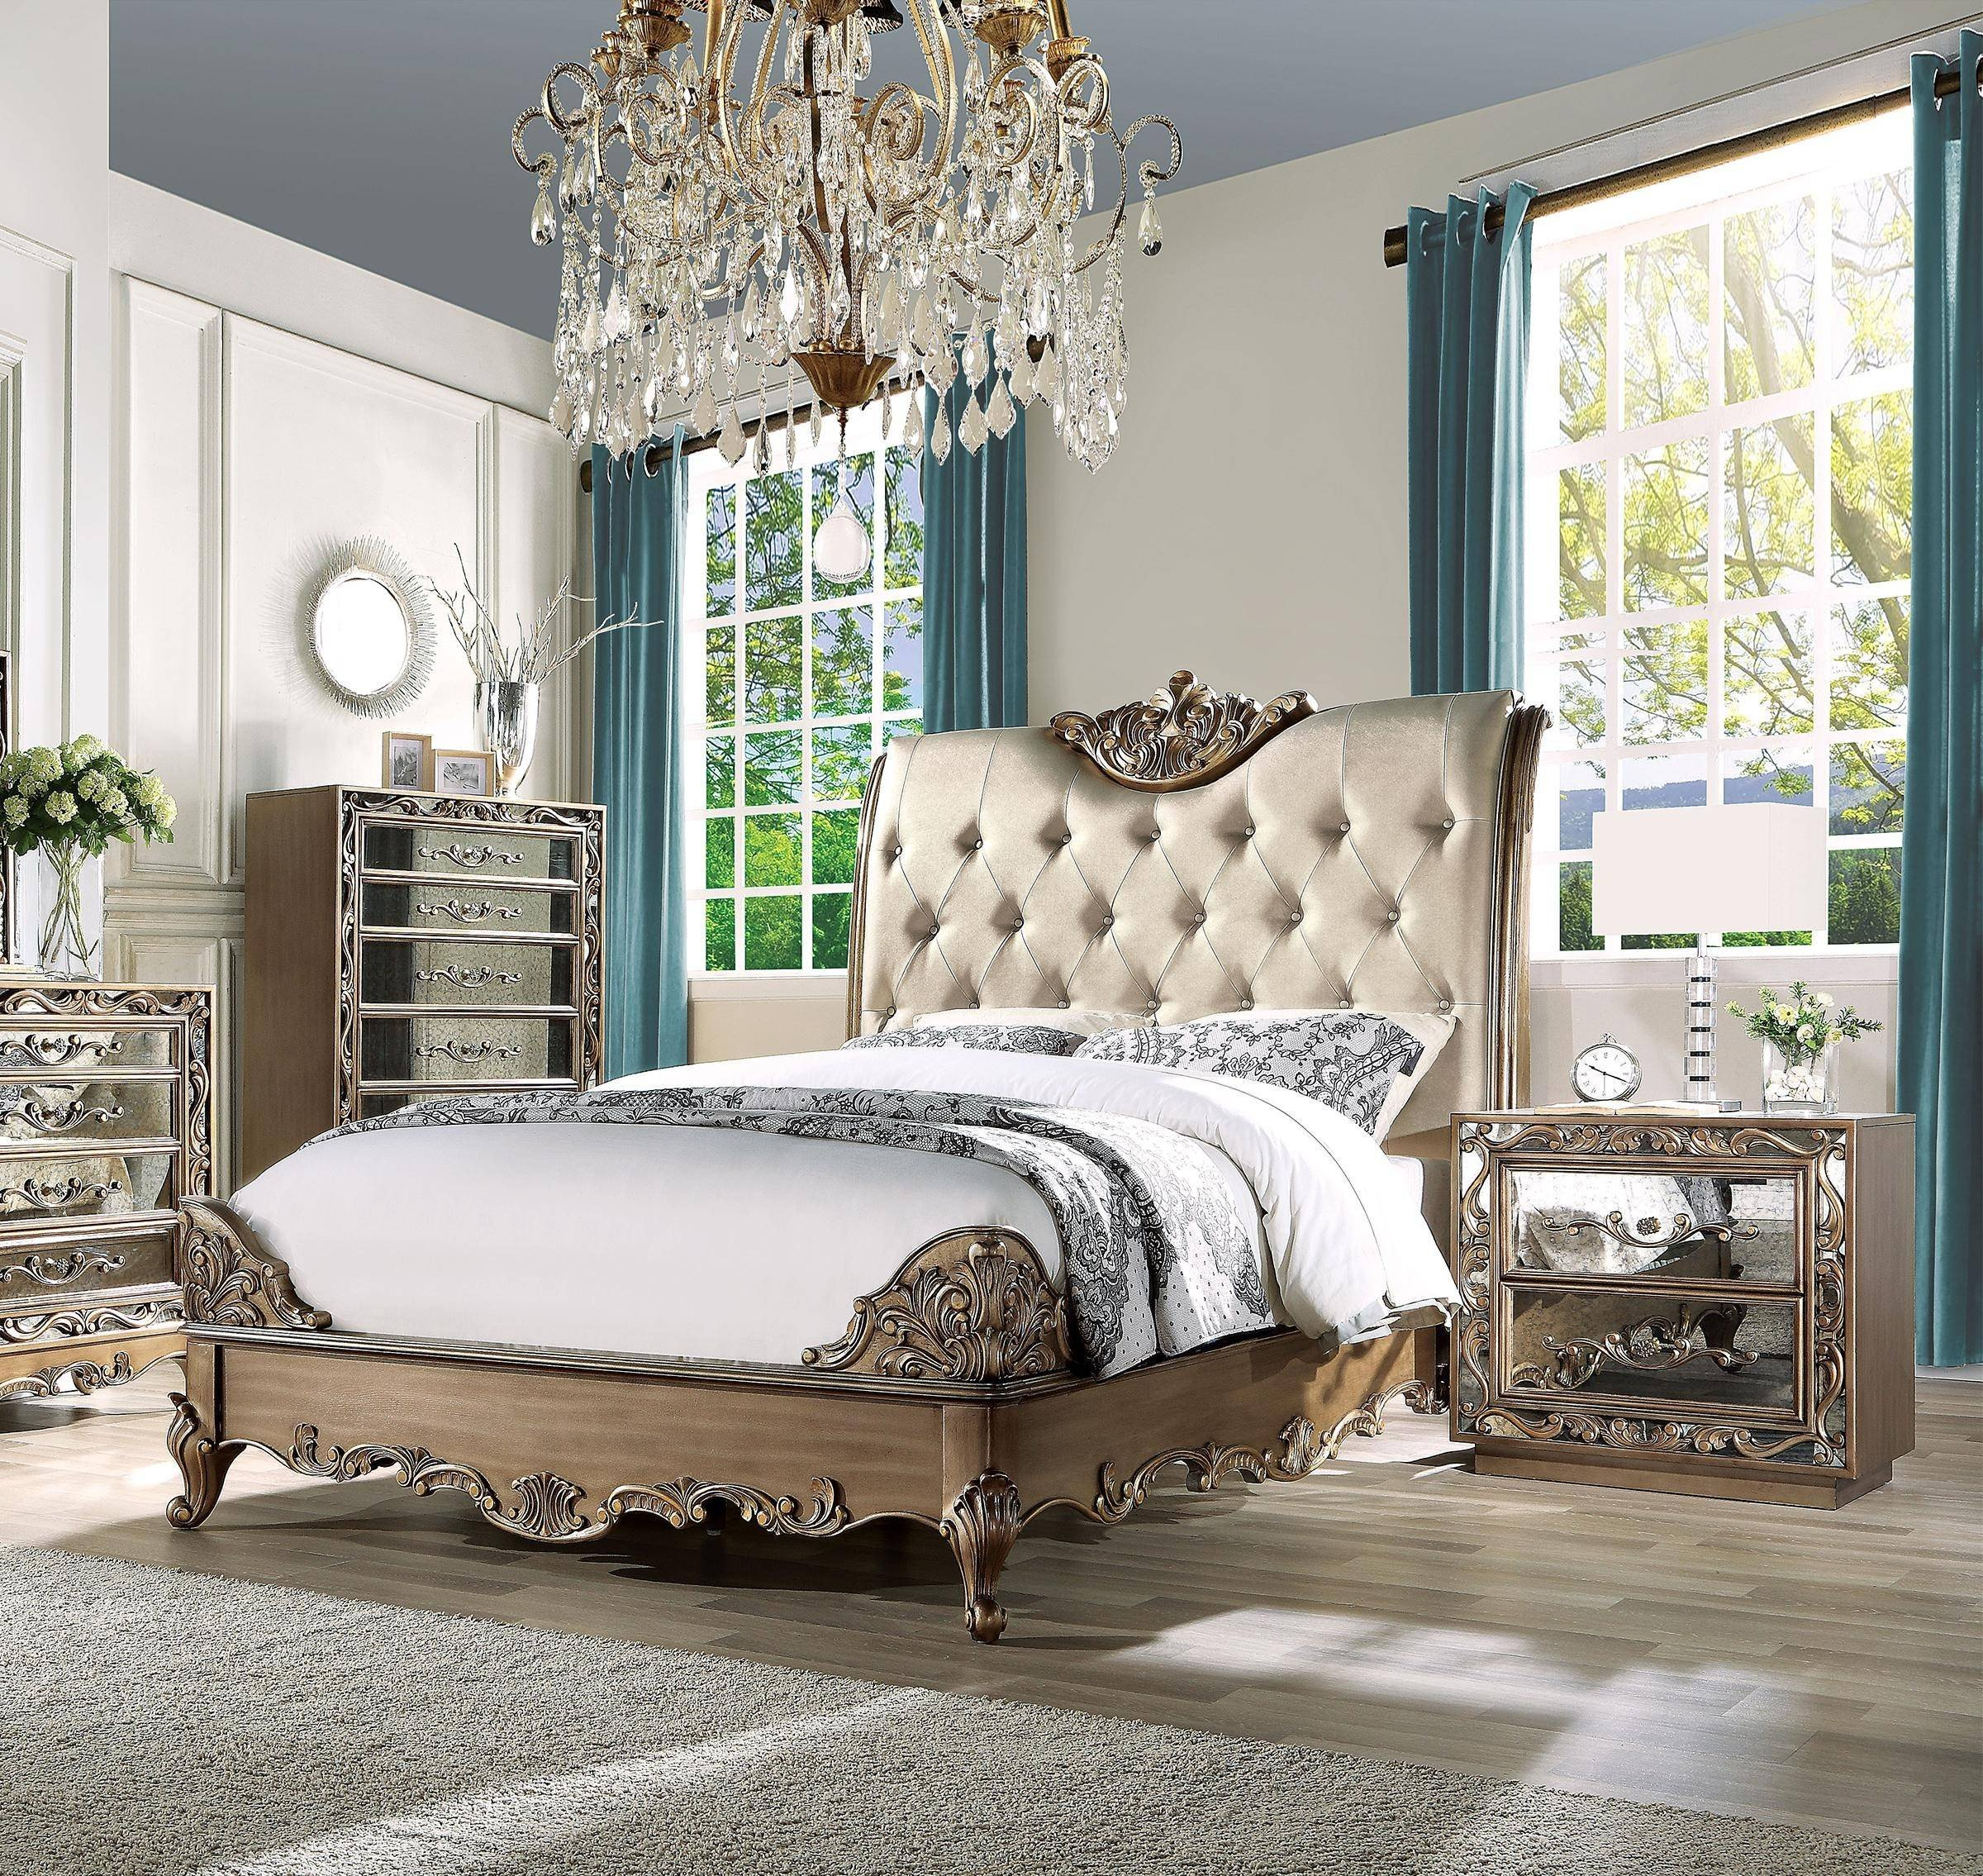 Cheap King Bedroom Set New Luxury King Bedroom Set 3 Antique Gold Champagne F Leather